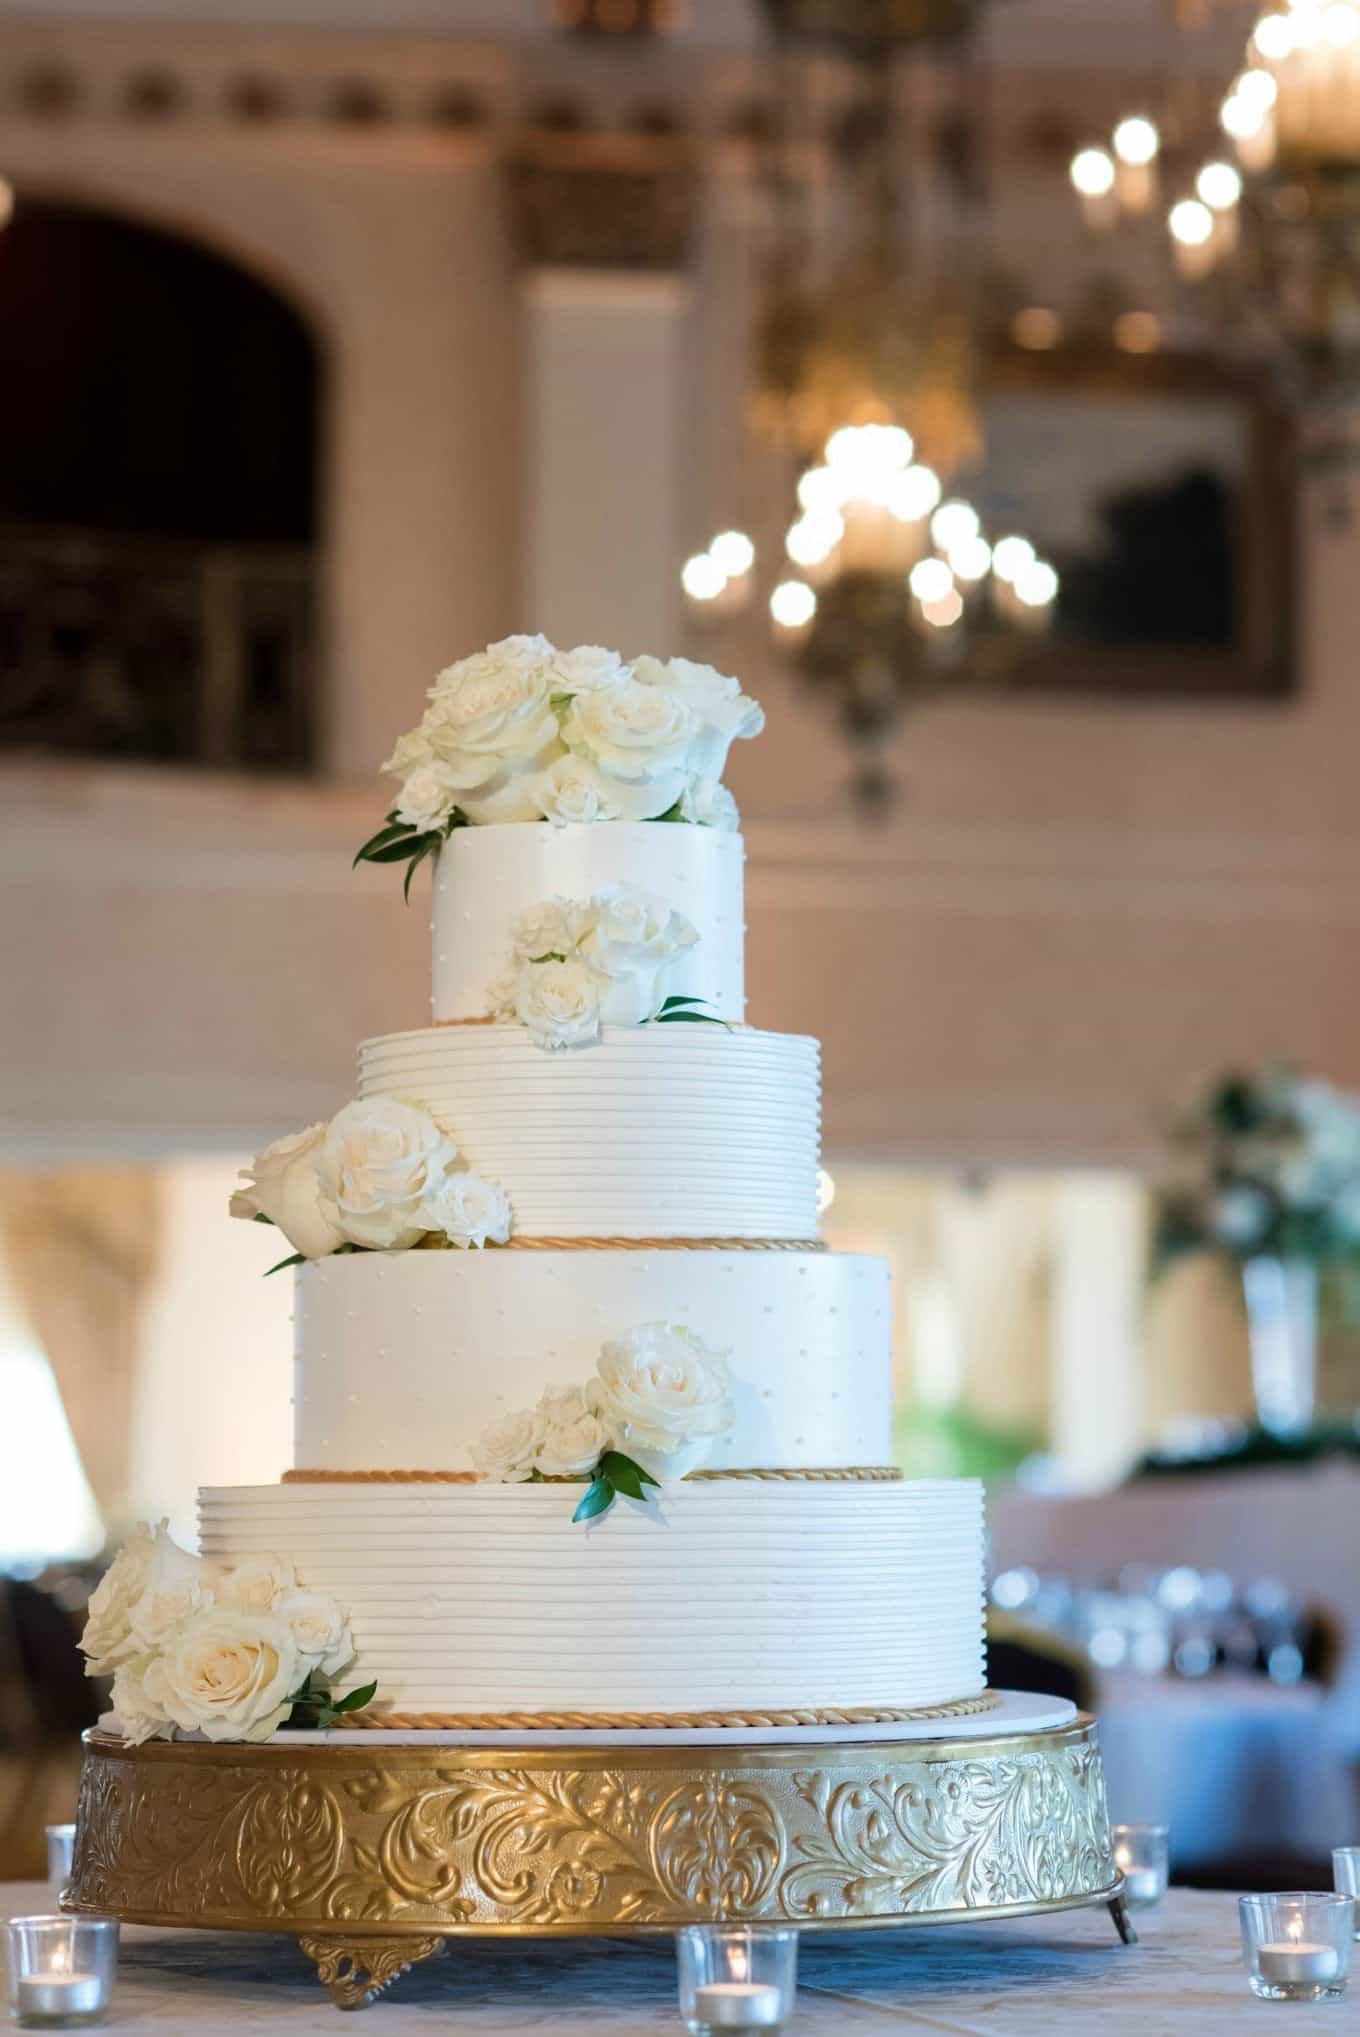 Classic Wedding Cake With Four Tiers (Image 12 of 16)